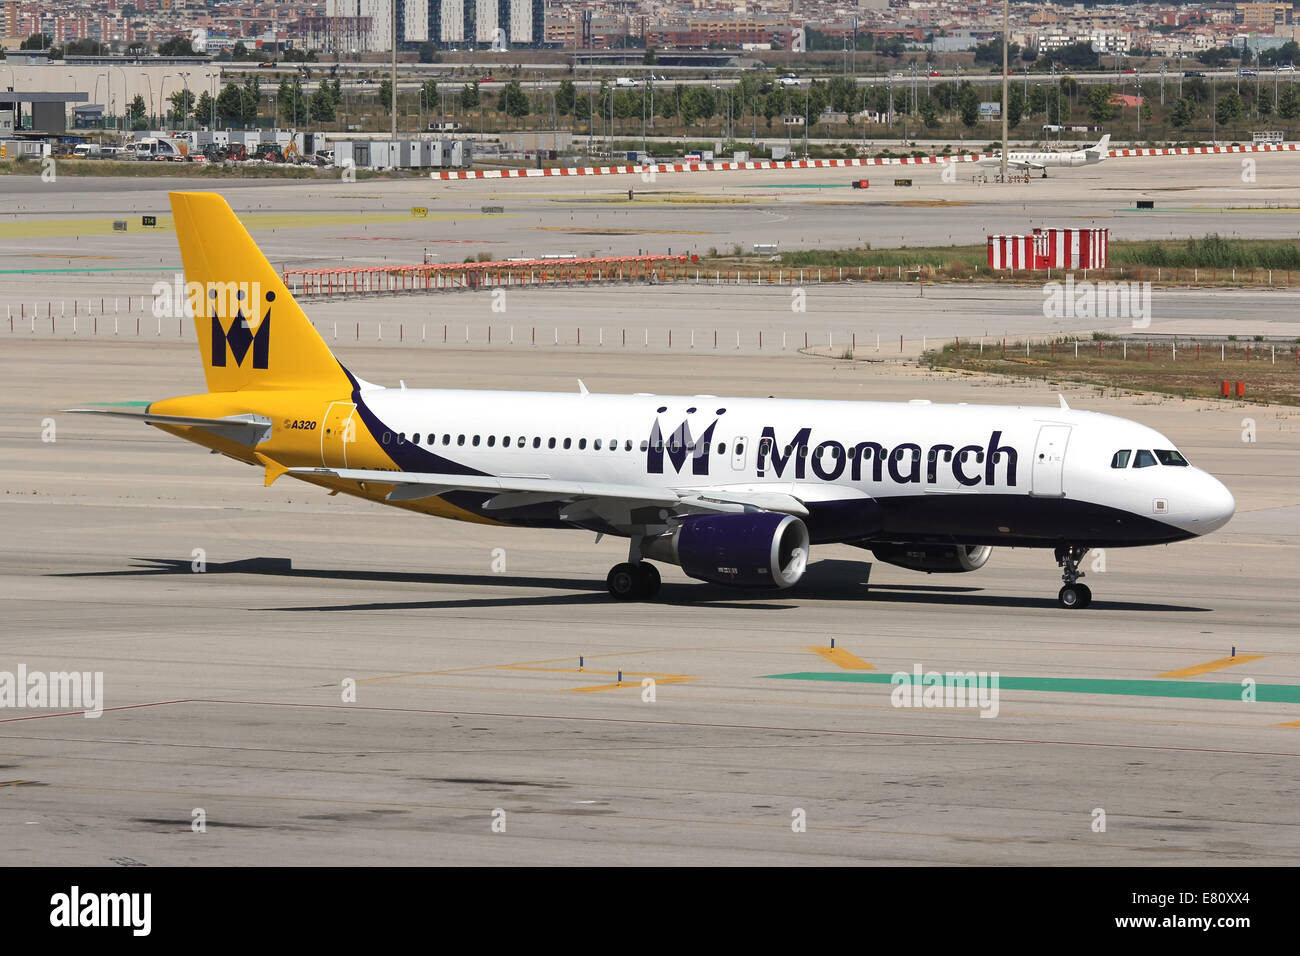 Monarch Airlines Airbus A320 at Barcelona airport - Stock Image